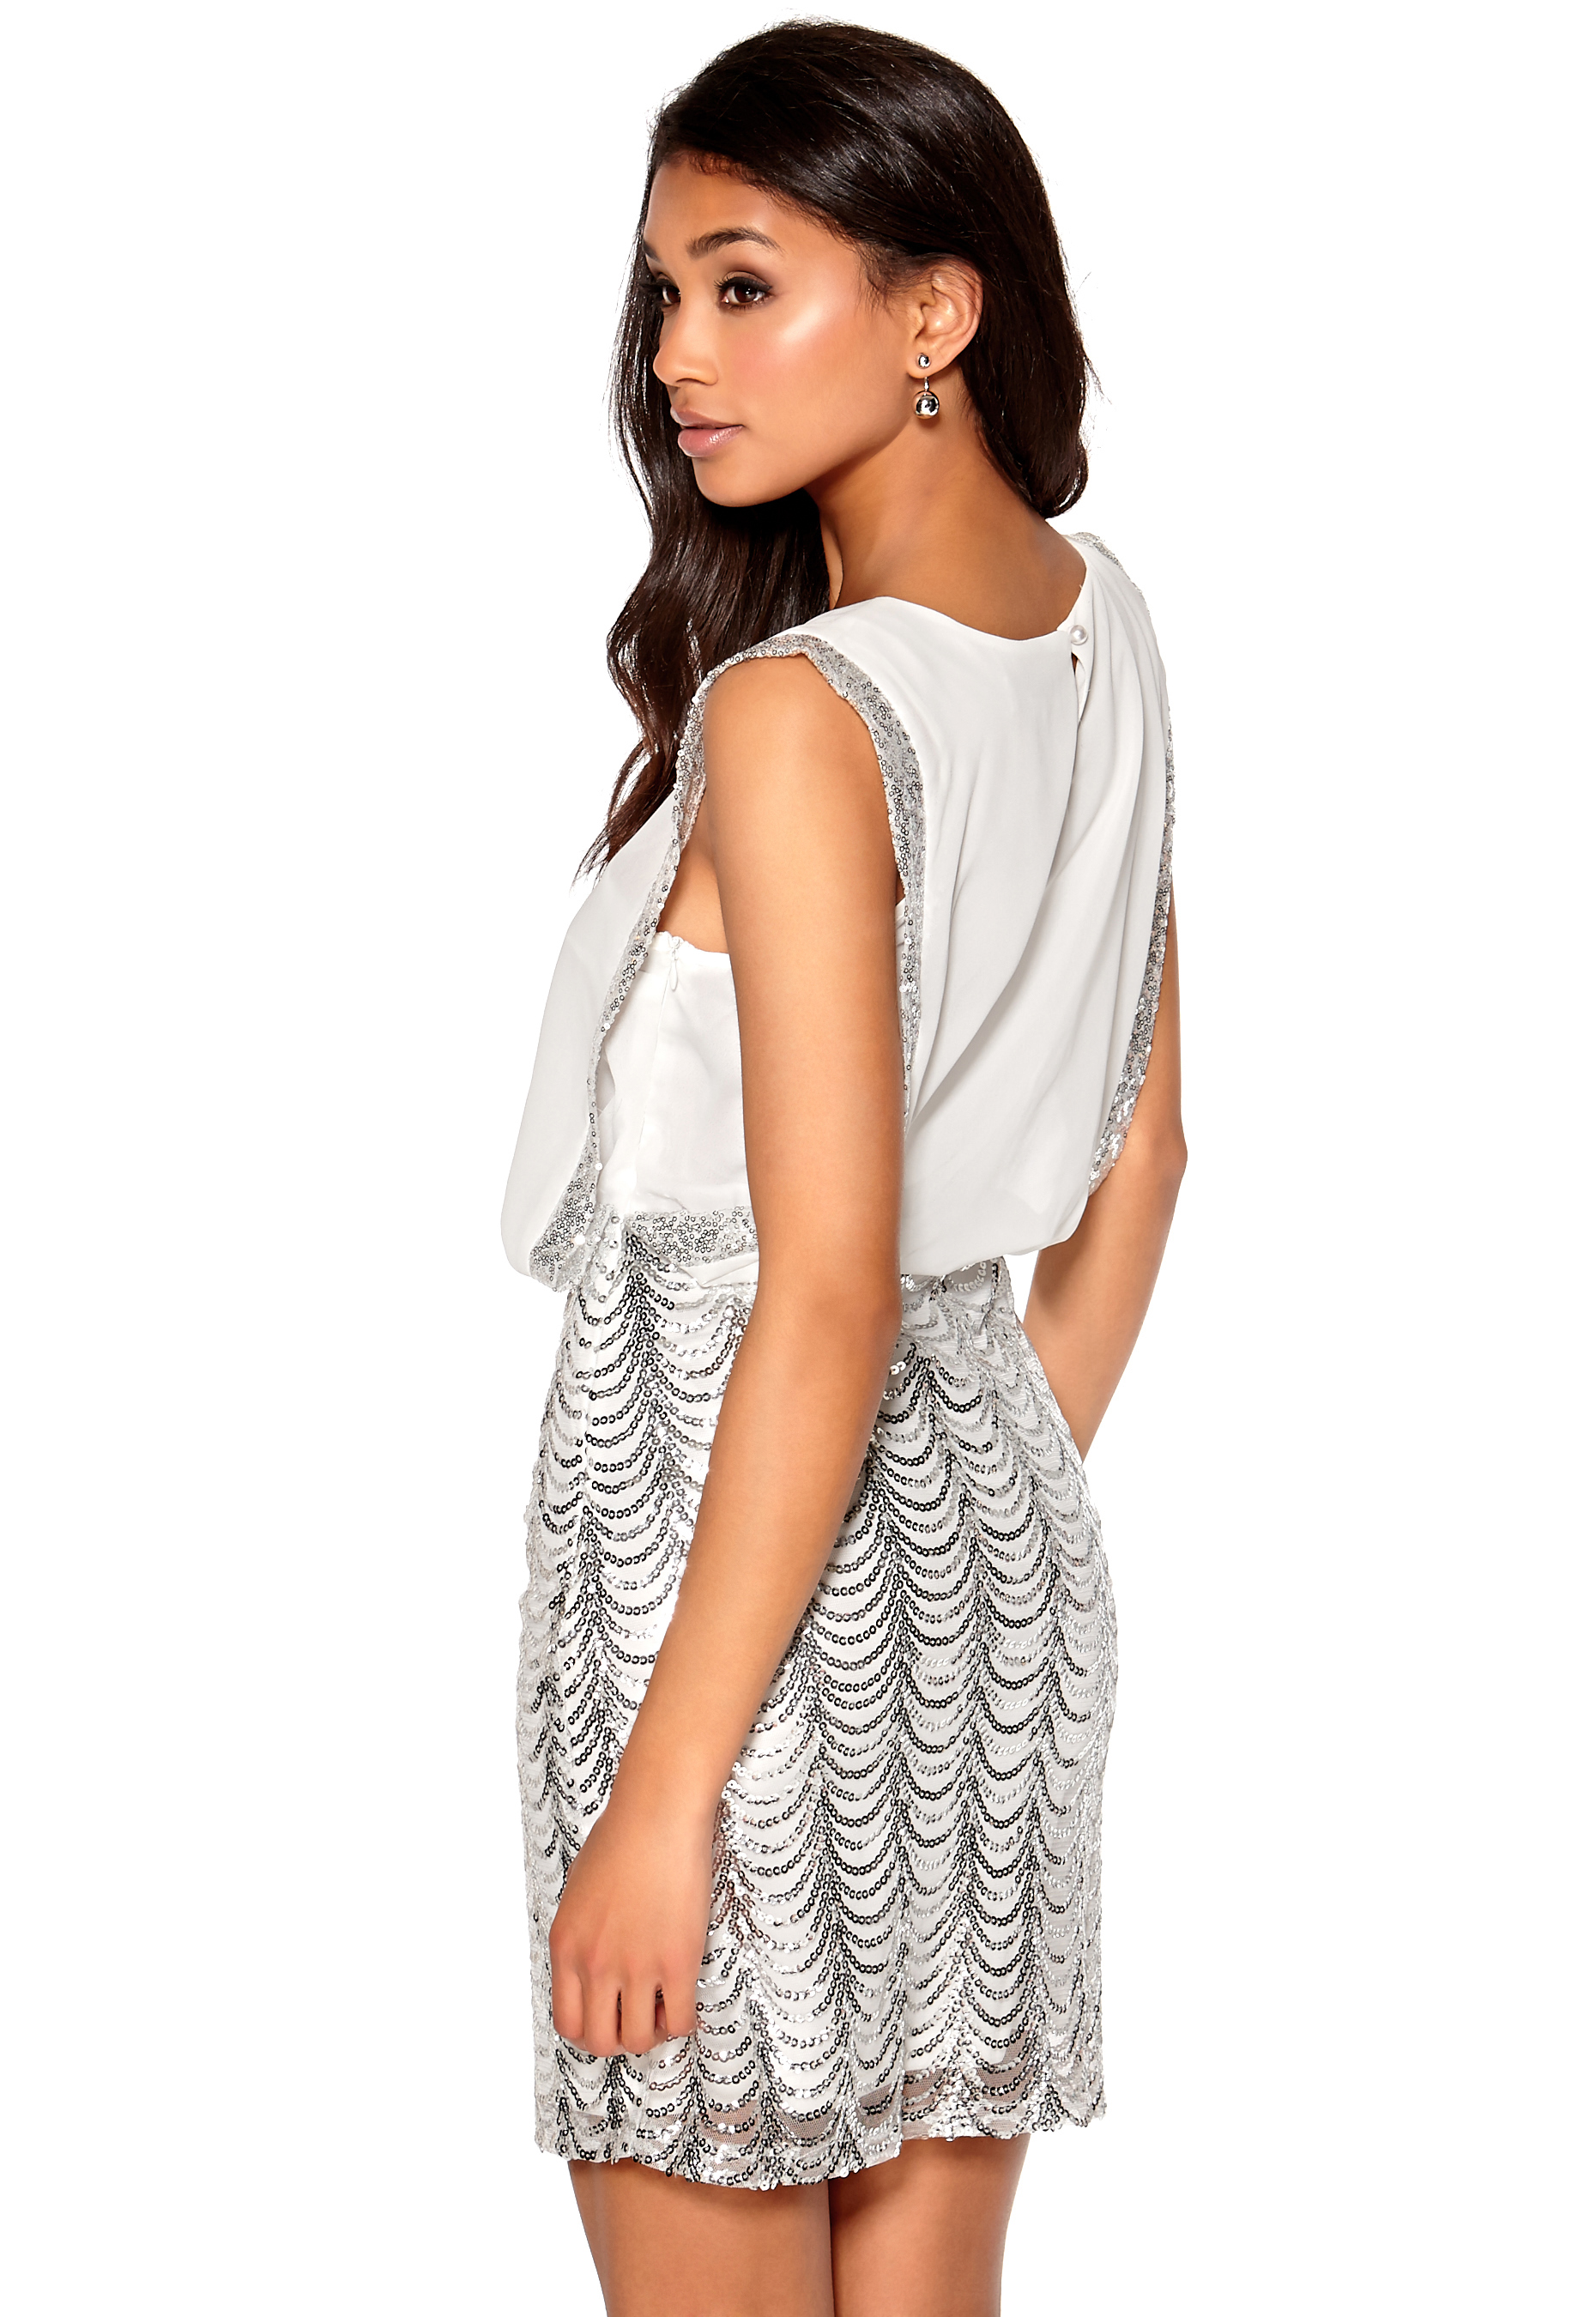 Model Behaviour Erika Dress White   Silver - Bubbleroom bd8268b9e4b68